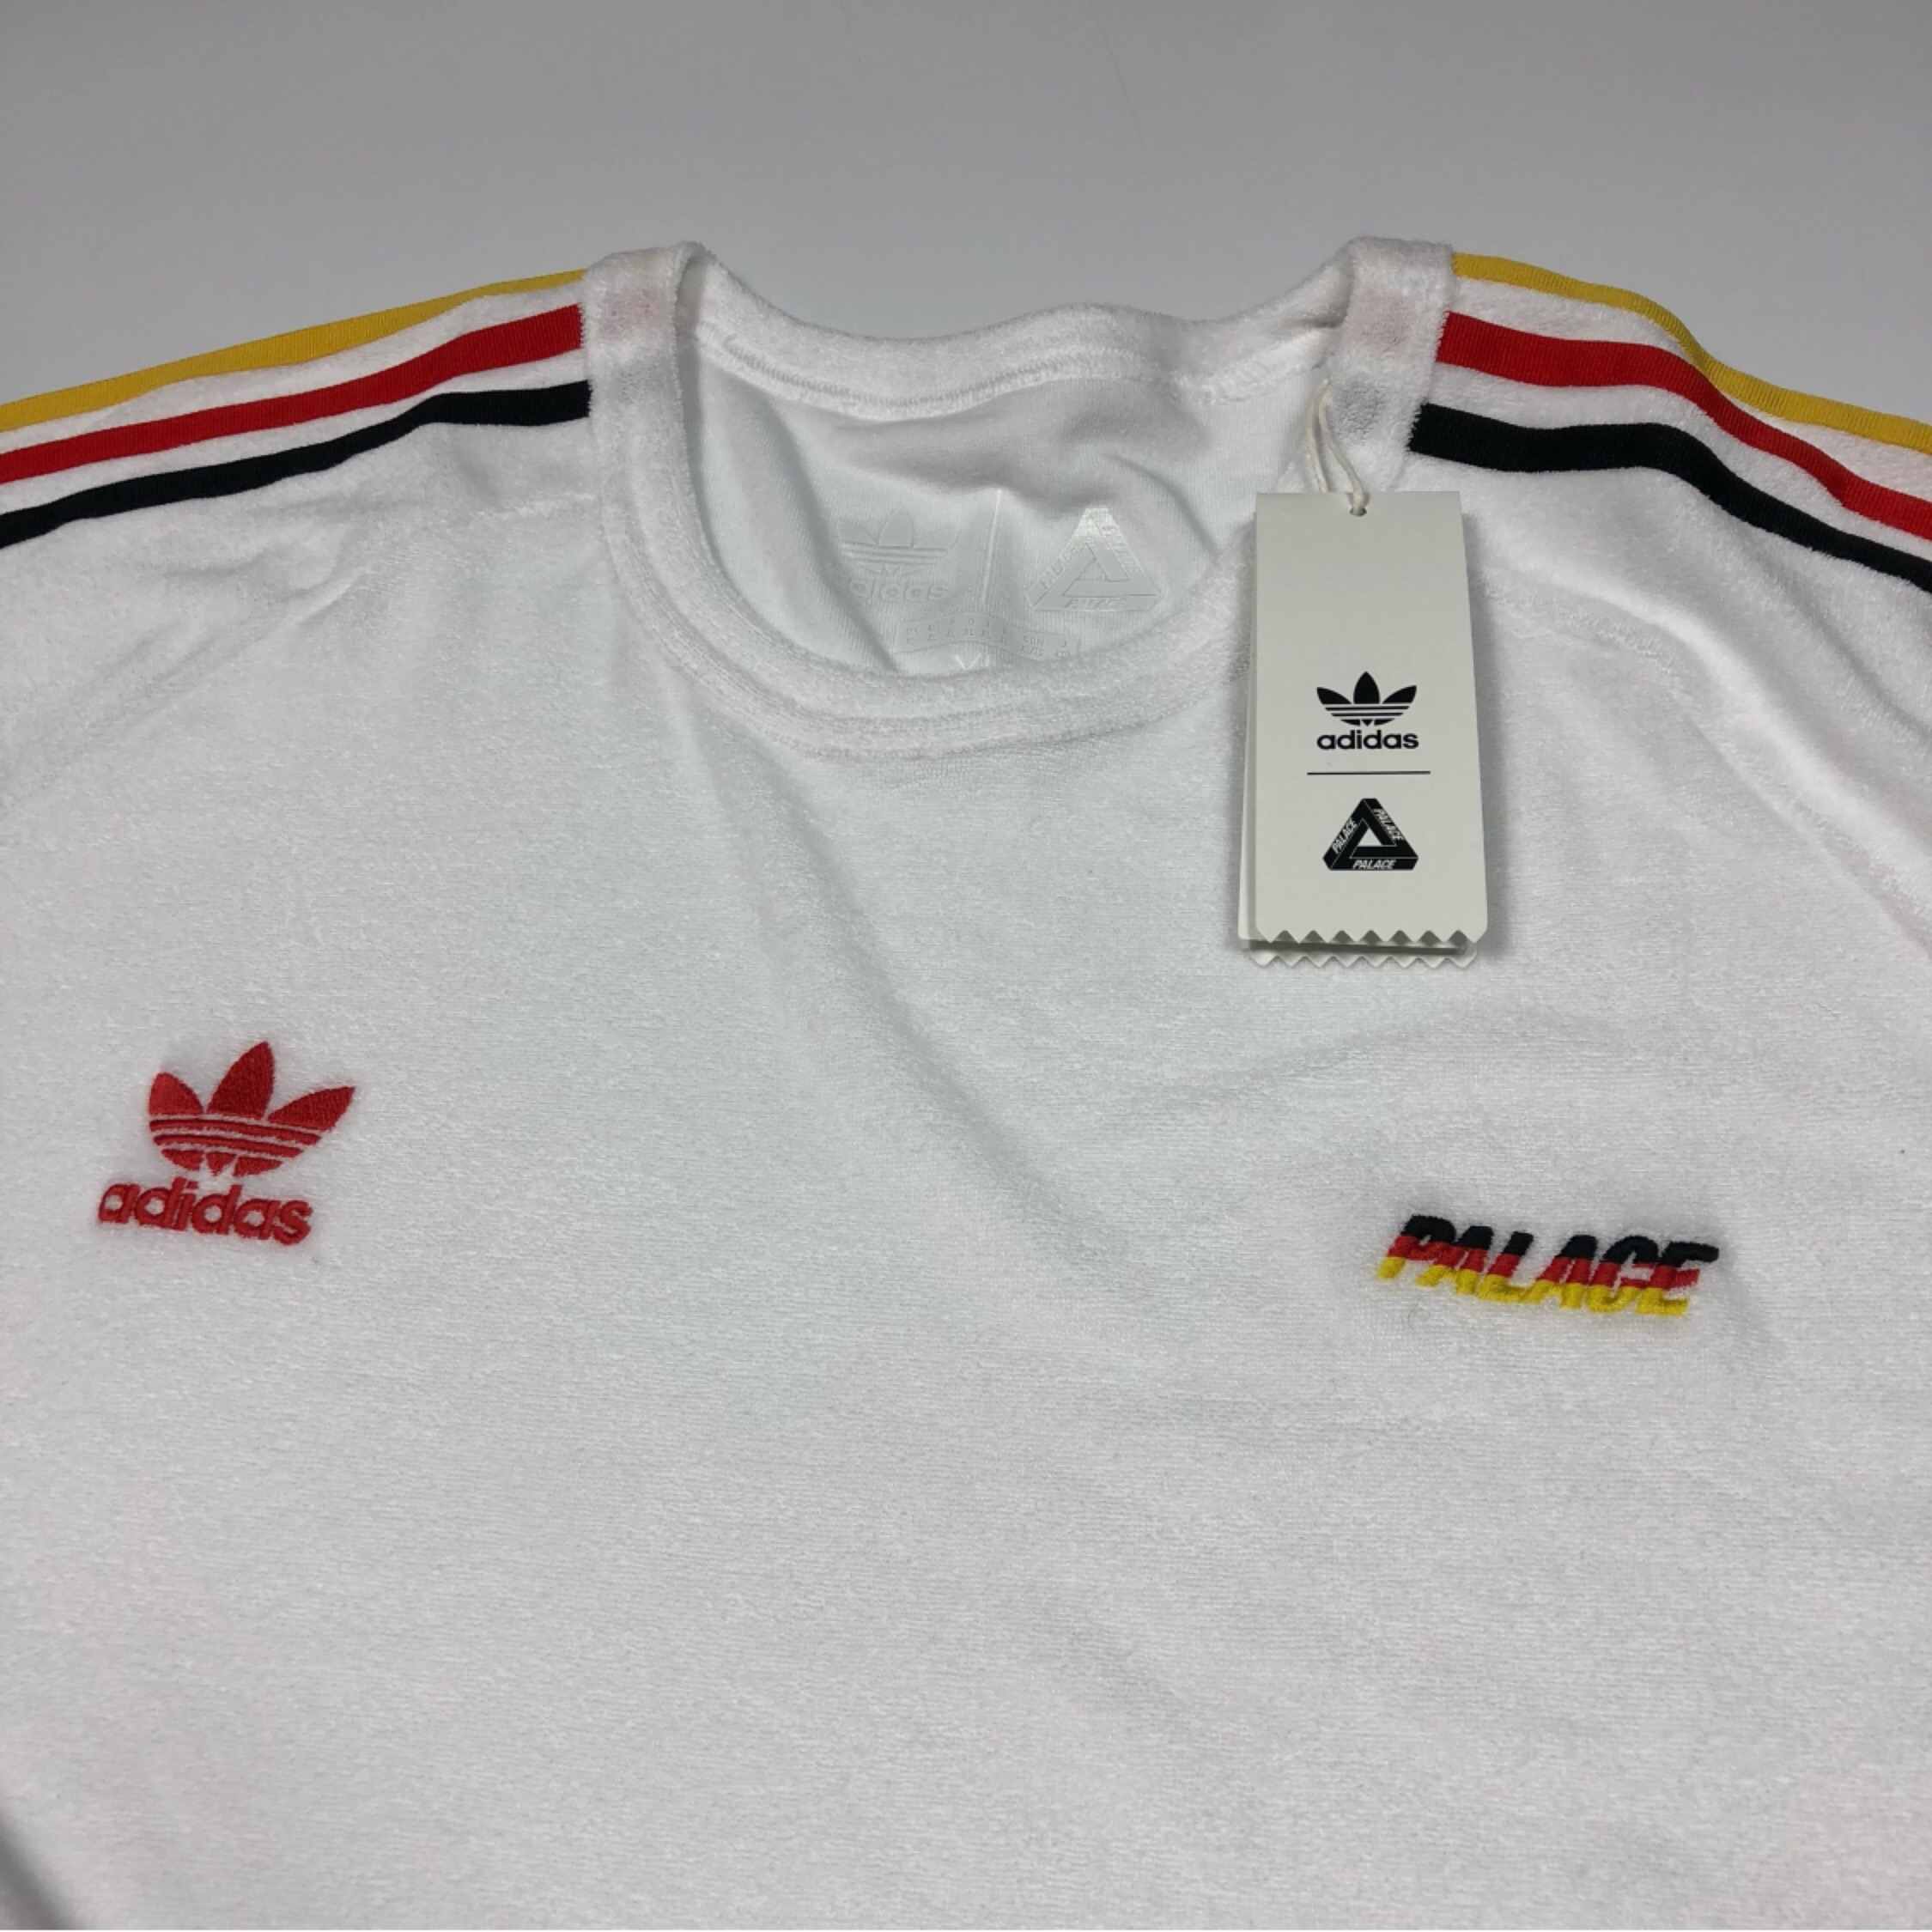 Palace X Adidas French Terry Germany T Shirt Xl